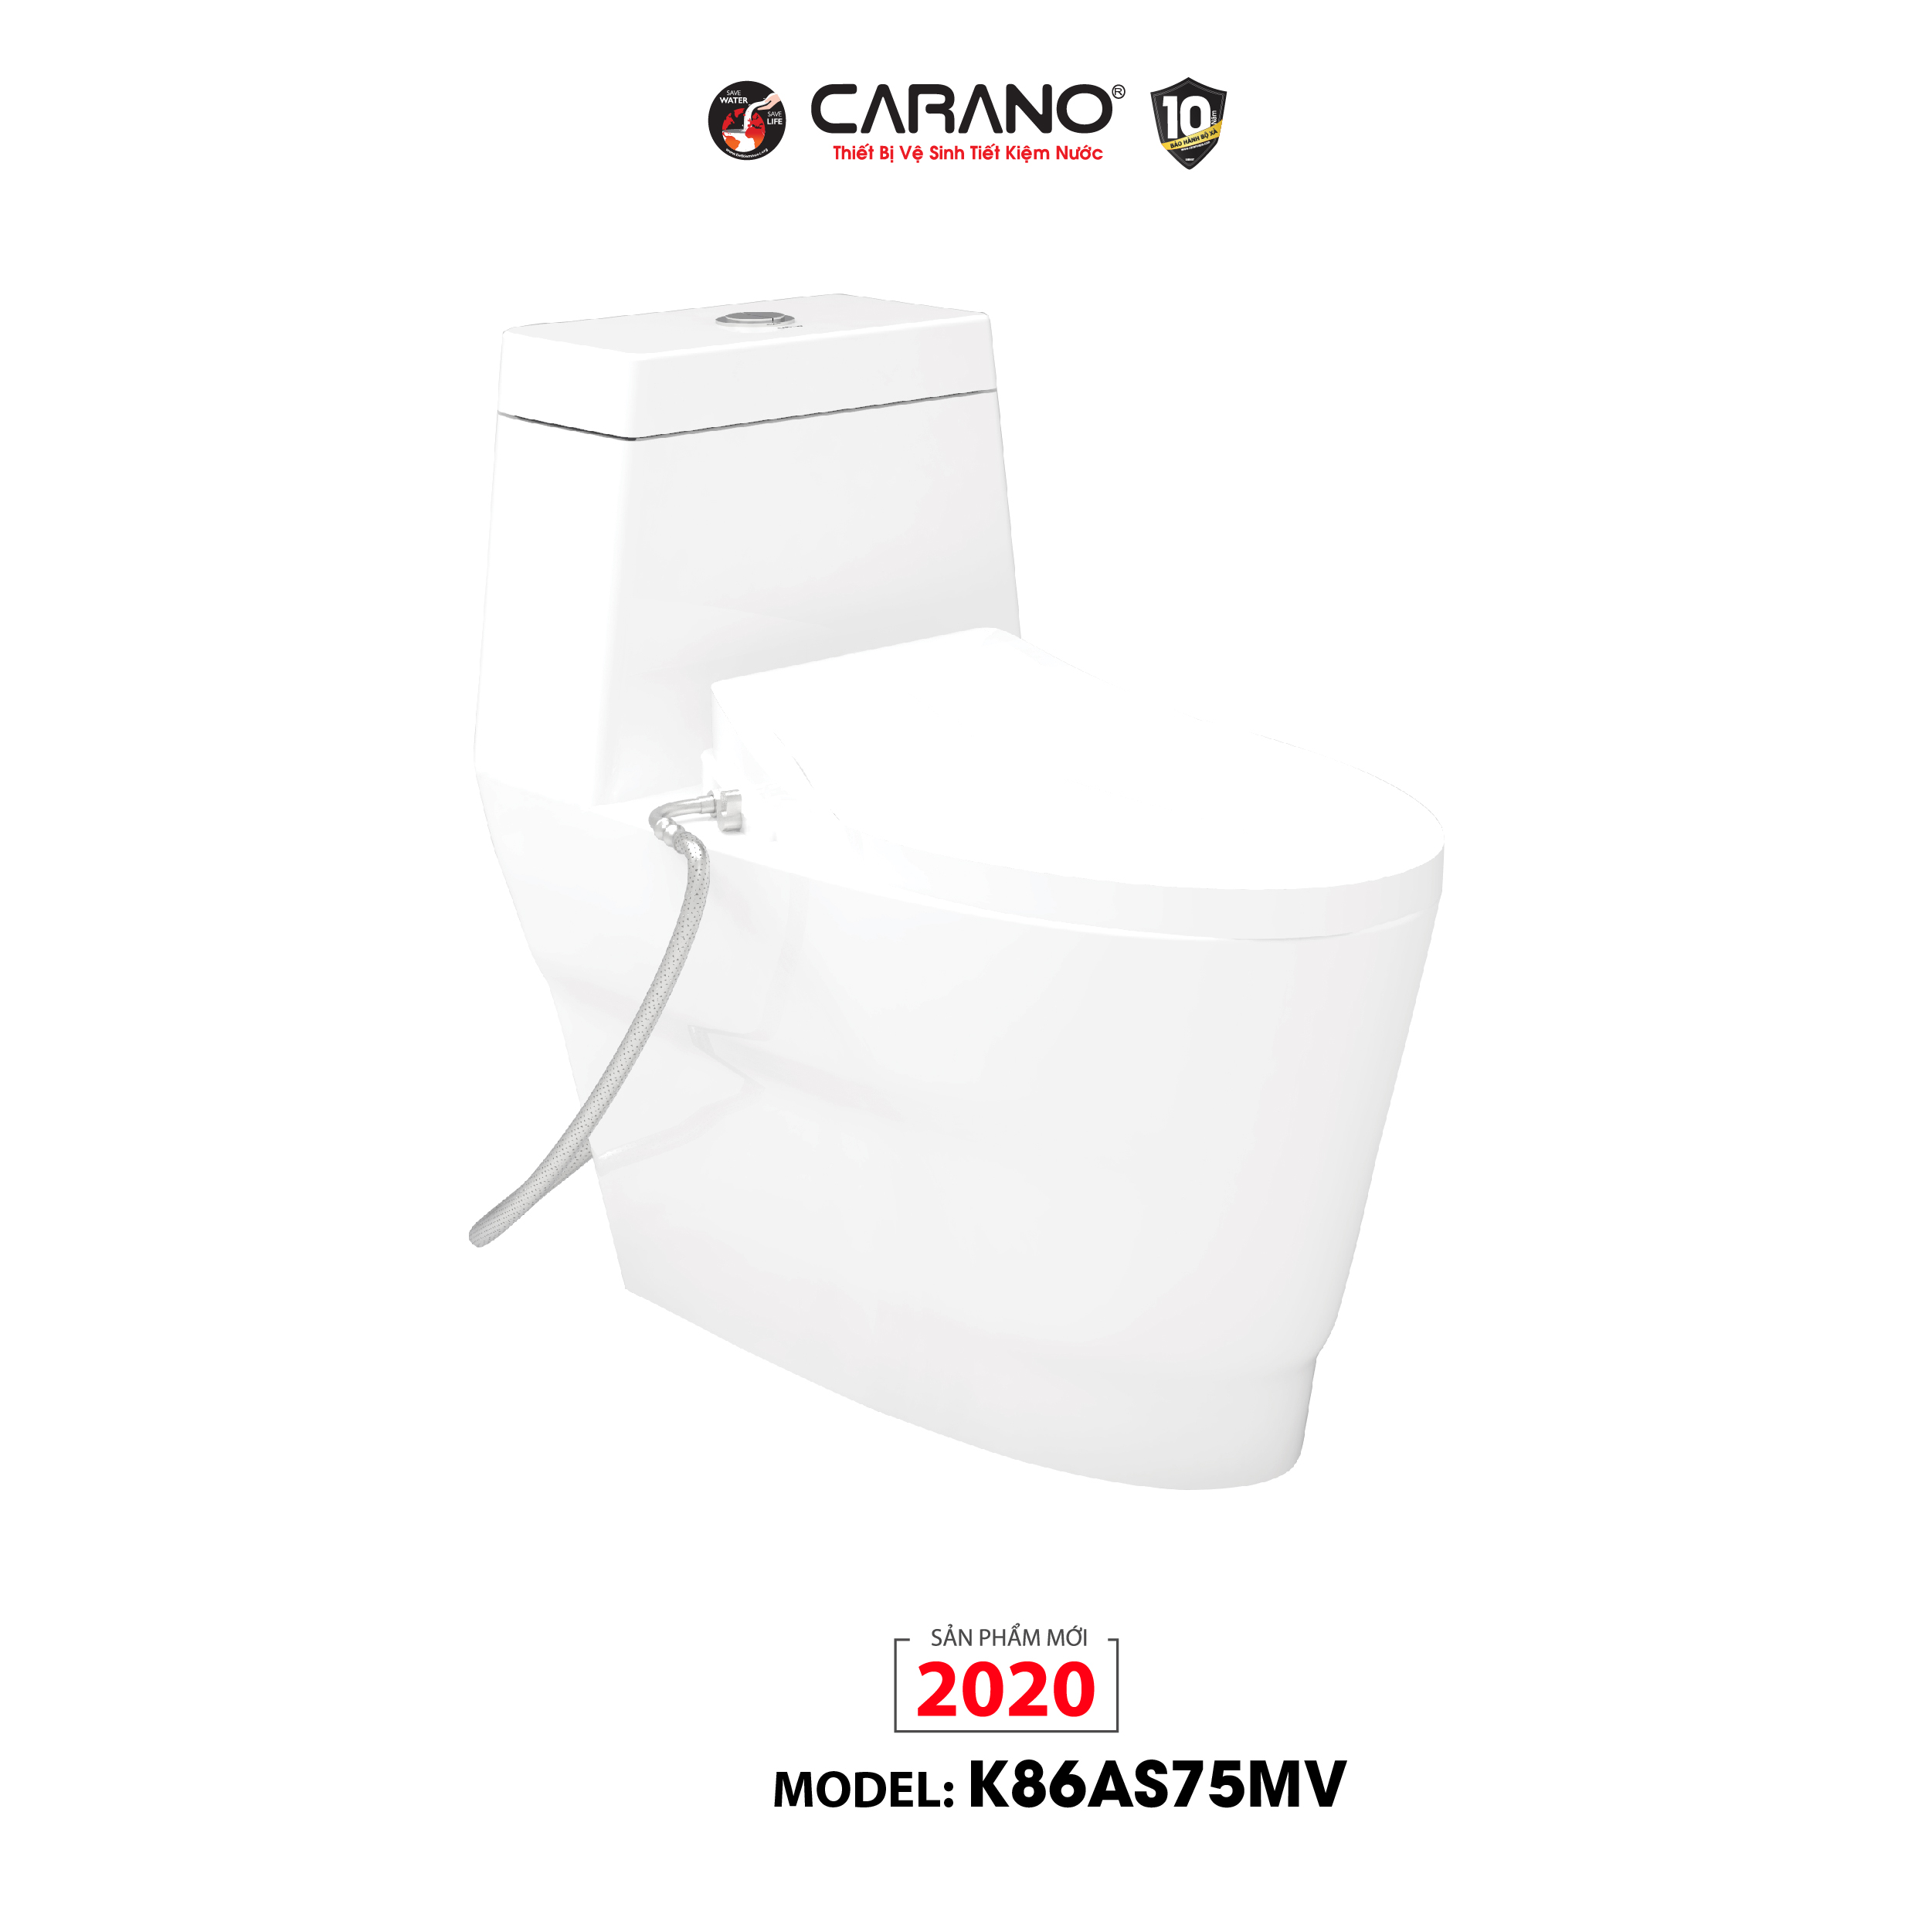 BỒN CẦU CARANO 1 KHỐI K86AS75MV (TOILET MODEL: K86AS75MV)